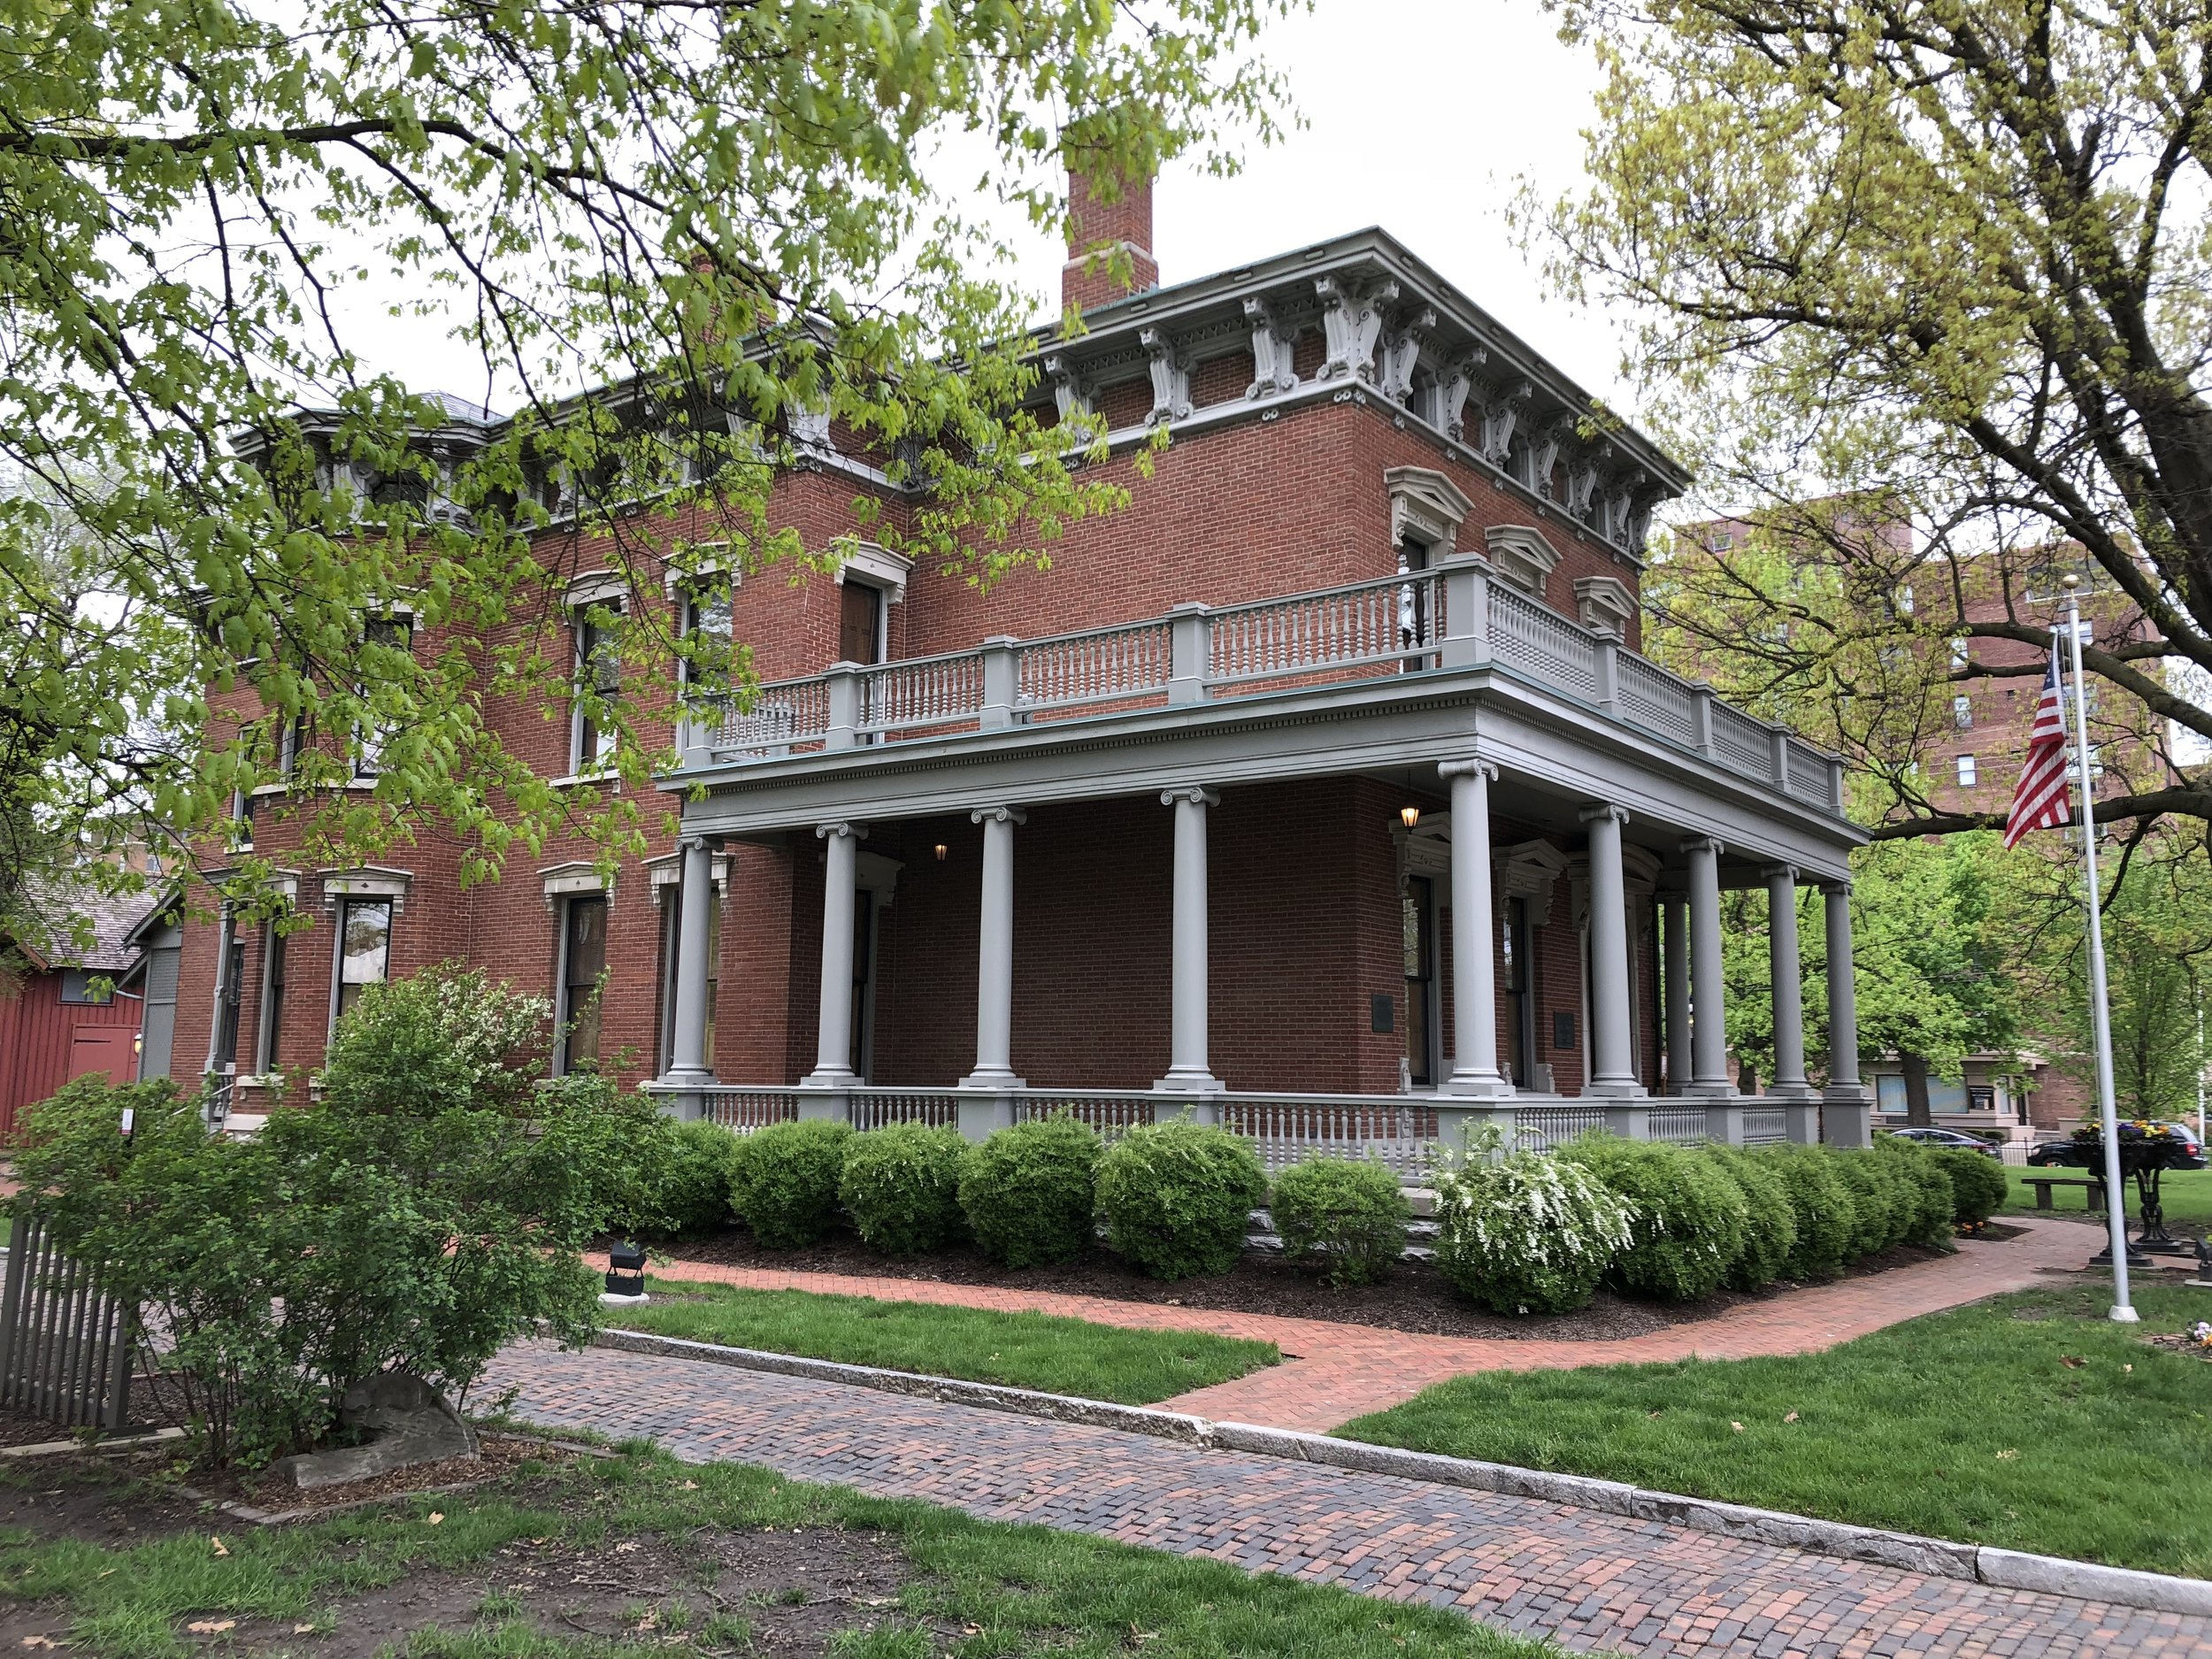 Finally, I visited Benjamin Harrison's house in Indianapolis. Even though he was born and raised in Ohio, the 23rd President became a Hoosier. He was the grandson of William Henry Harrison.